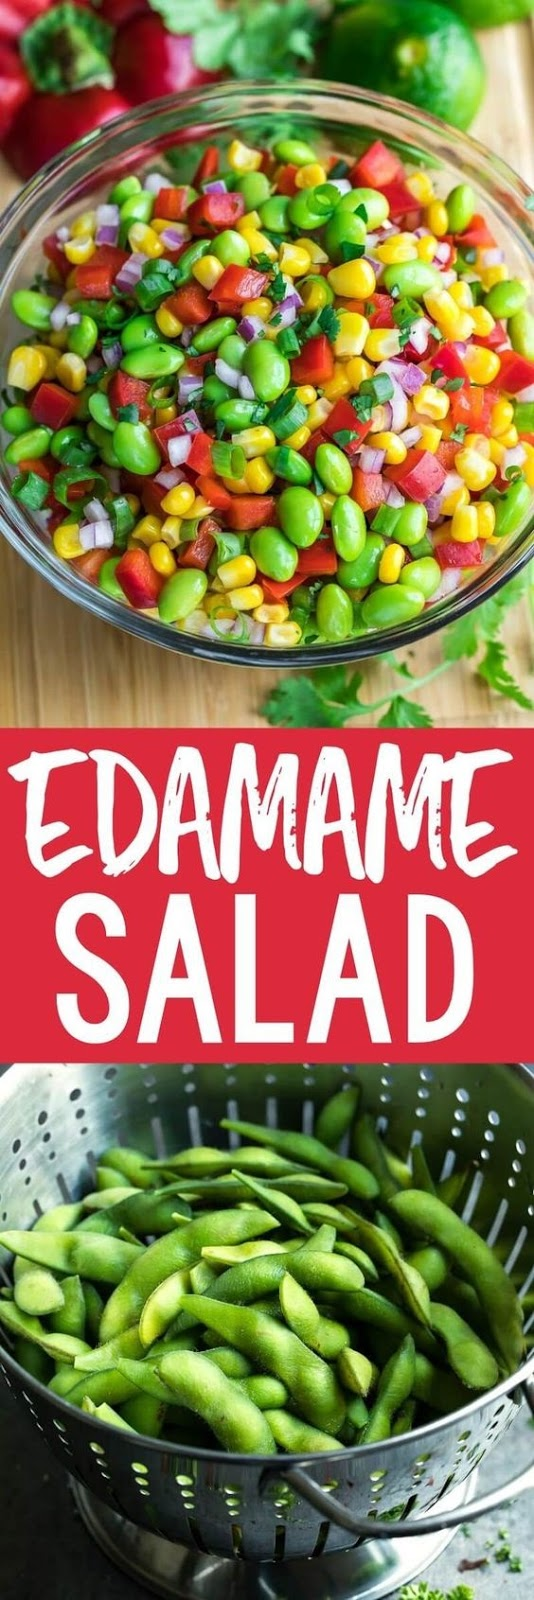 Edamame Salad With Cilantro Lime Dressing